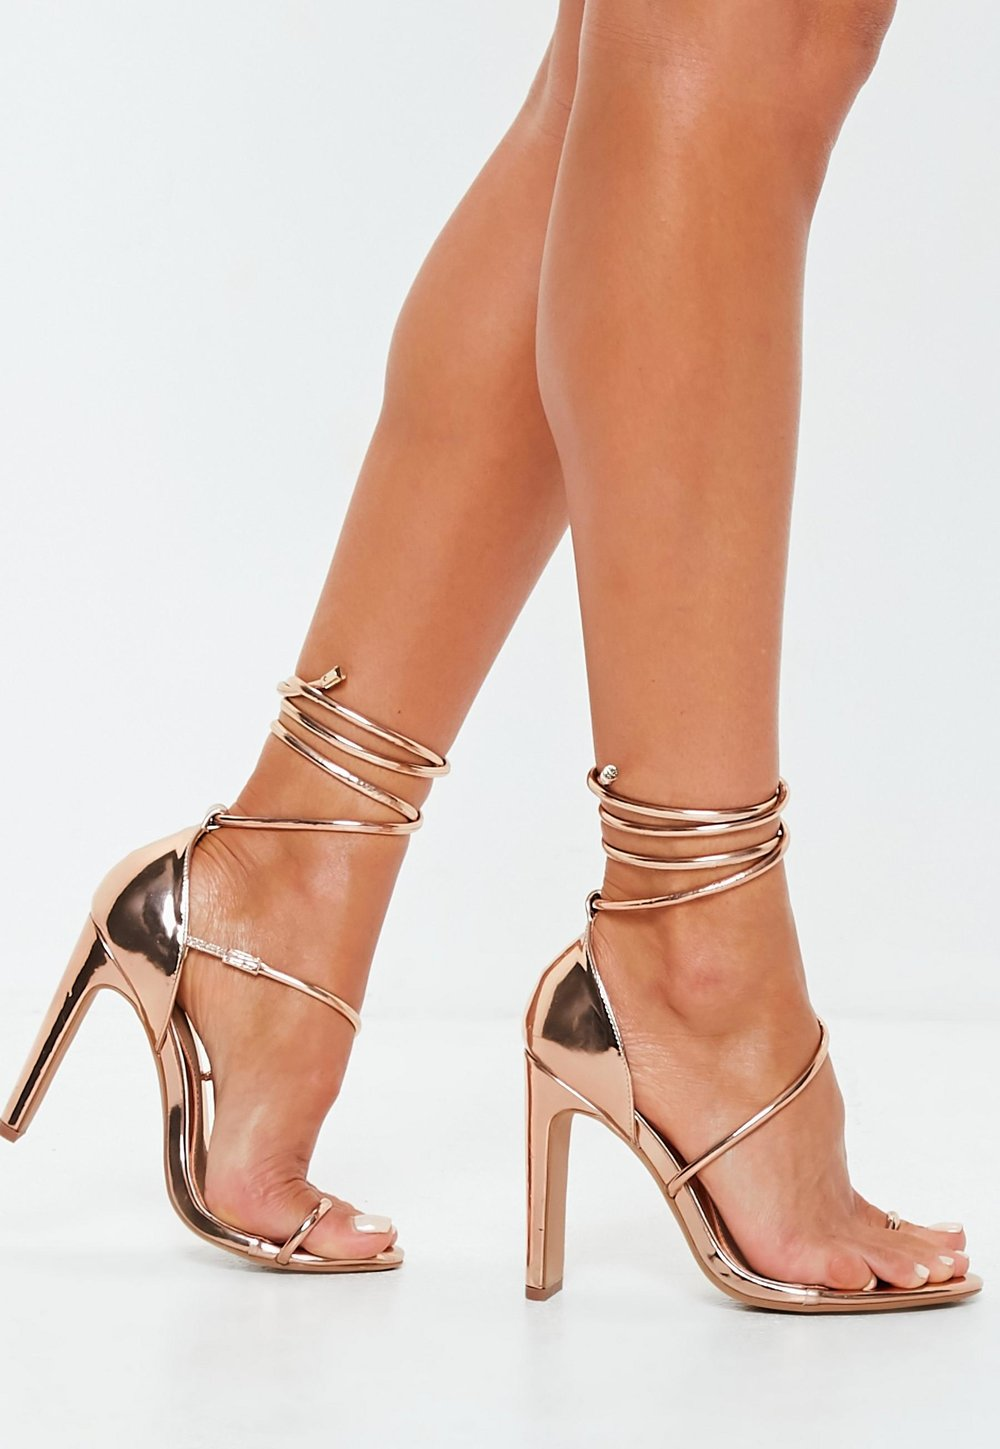 Missguided Rose Gold Strappy Heels- $33